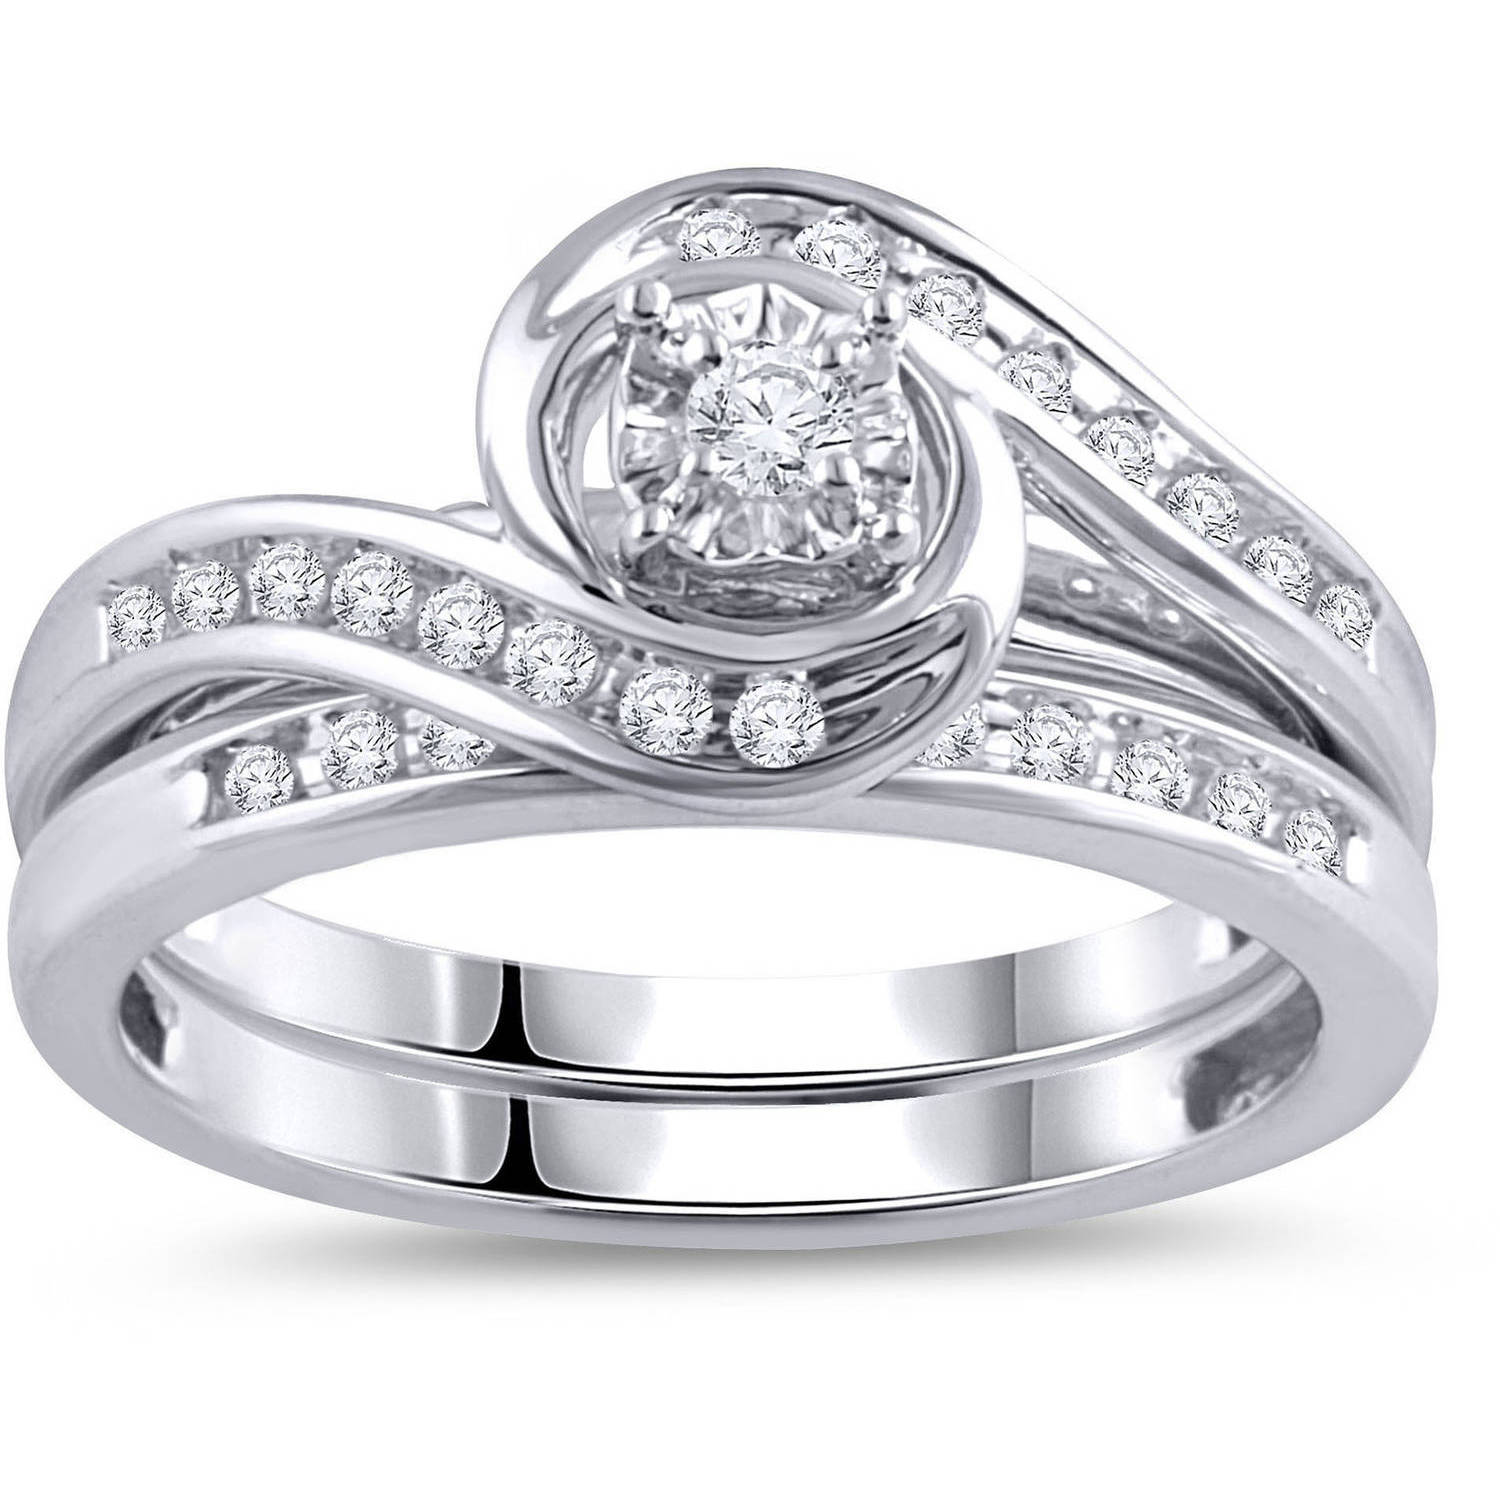 1/3 Carat T.W. Diamond Bypass Ring Bridal Set in 10kt White Gold